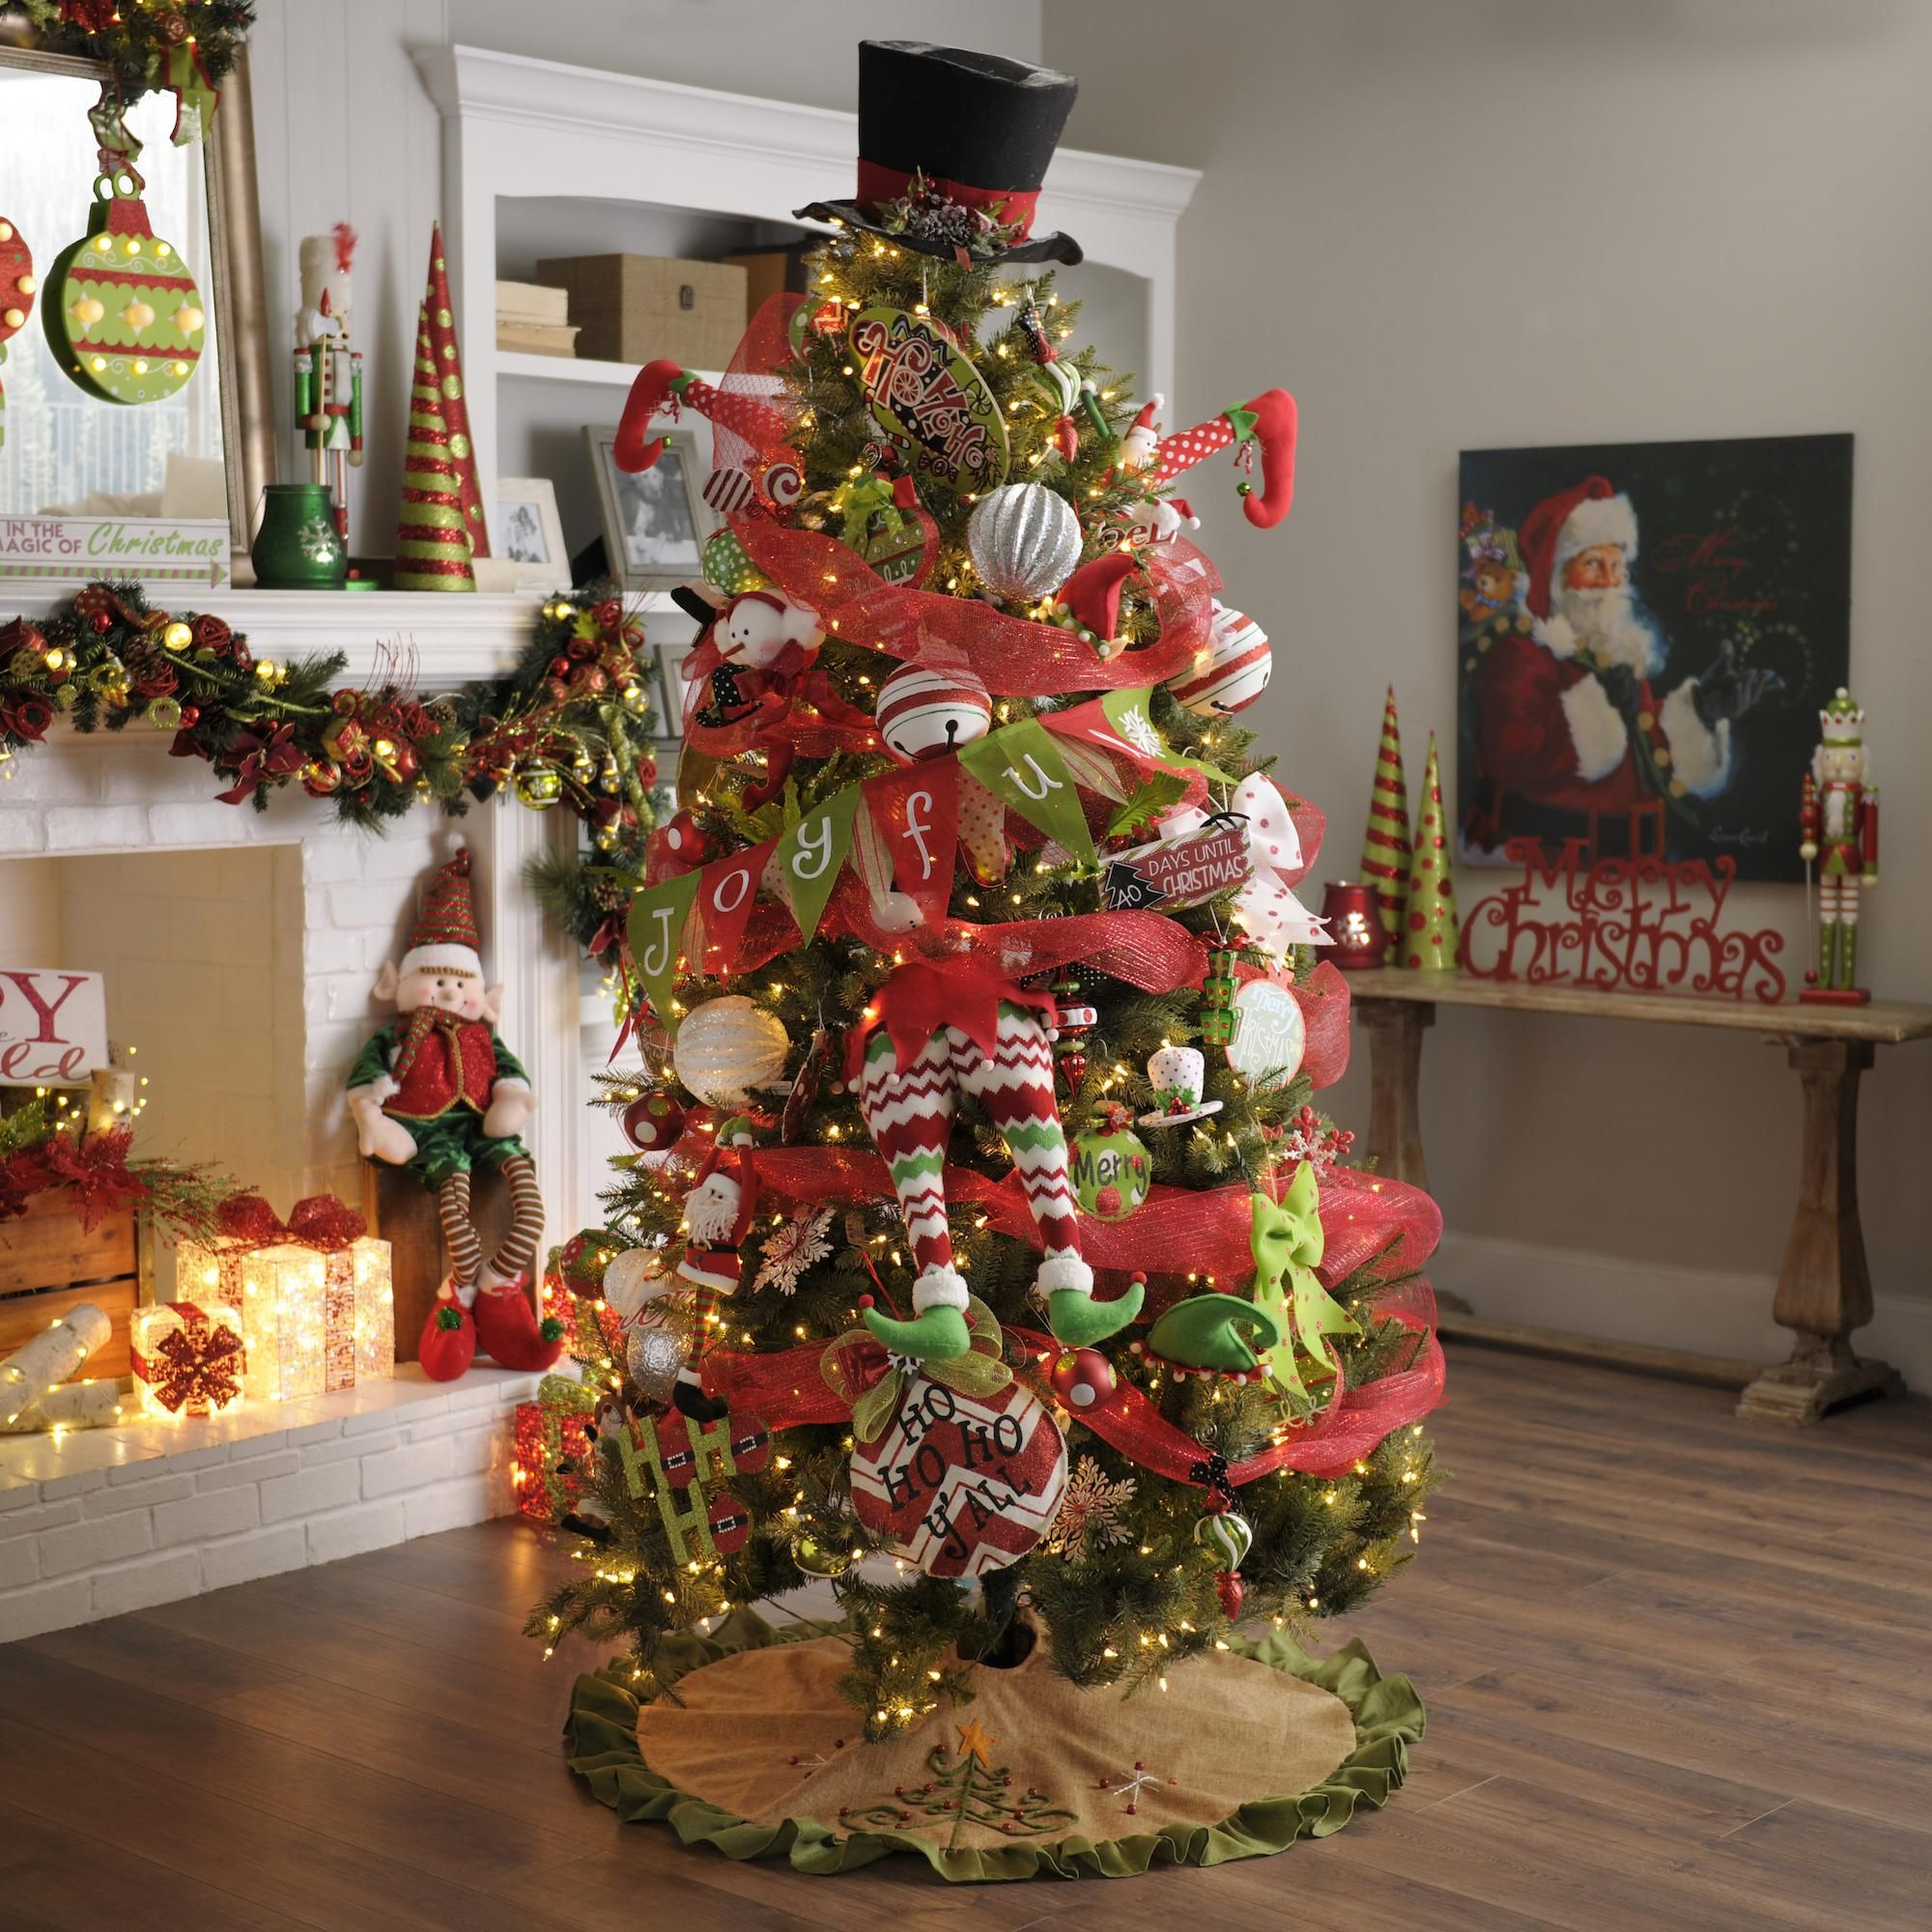 Kirklands Christmas Decorations: Don't Be Afraid Of Vibrant Colors For Christmas! The Holly